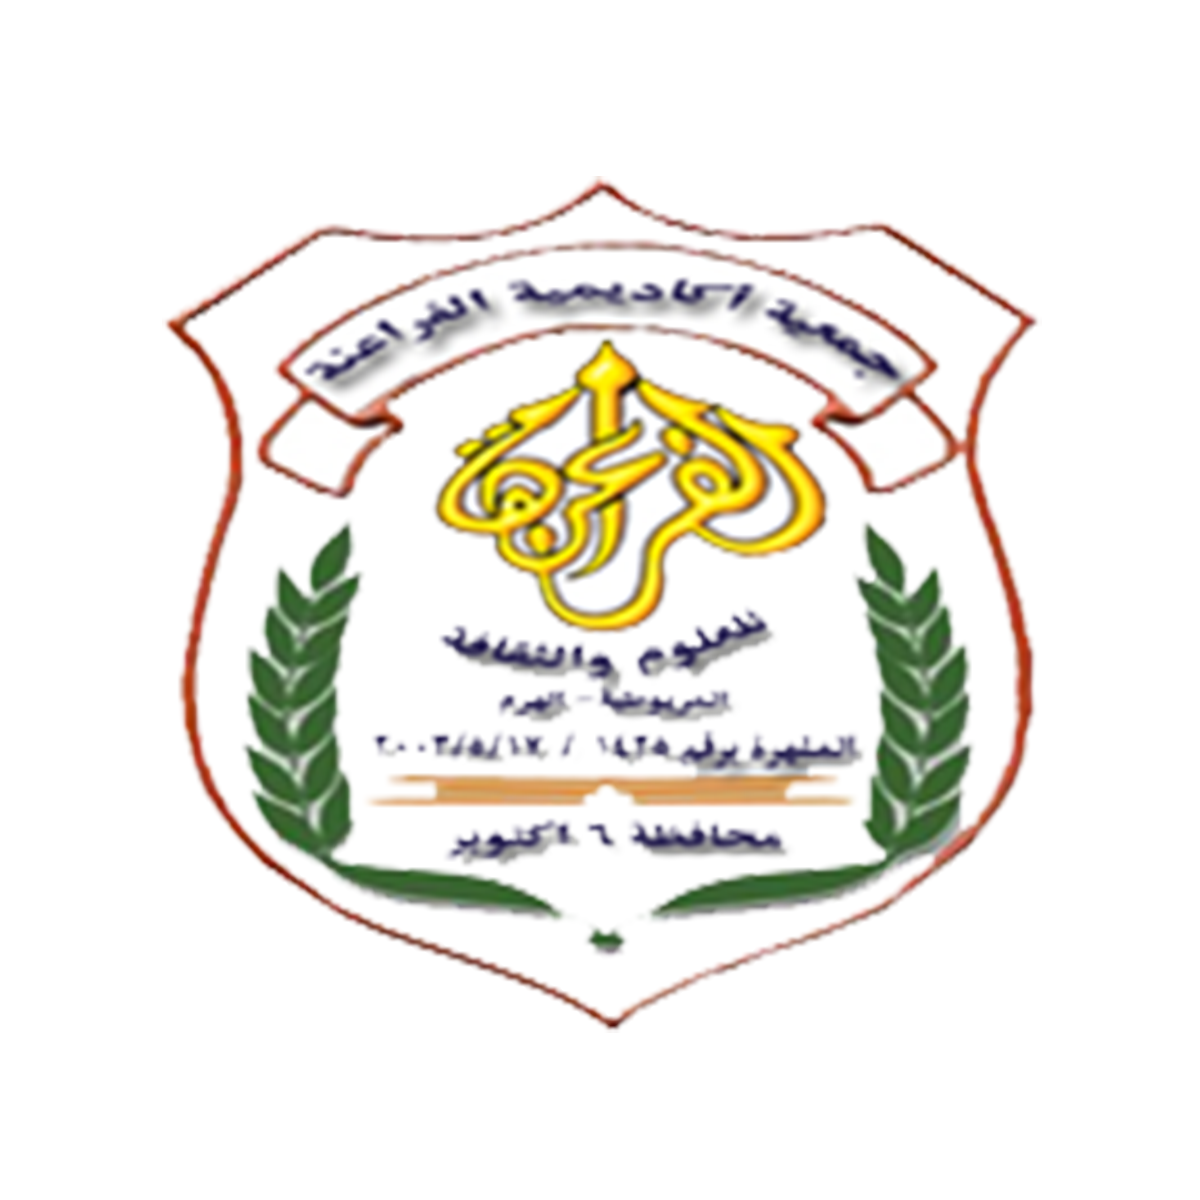 Pharaohs Higher Institute for Computer, Information Systems and Management - Saqqara Al Haram